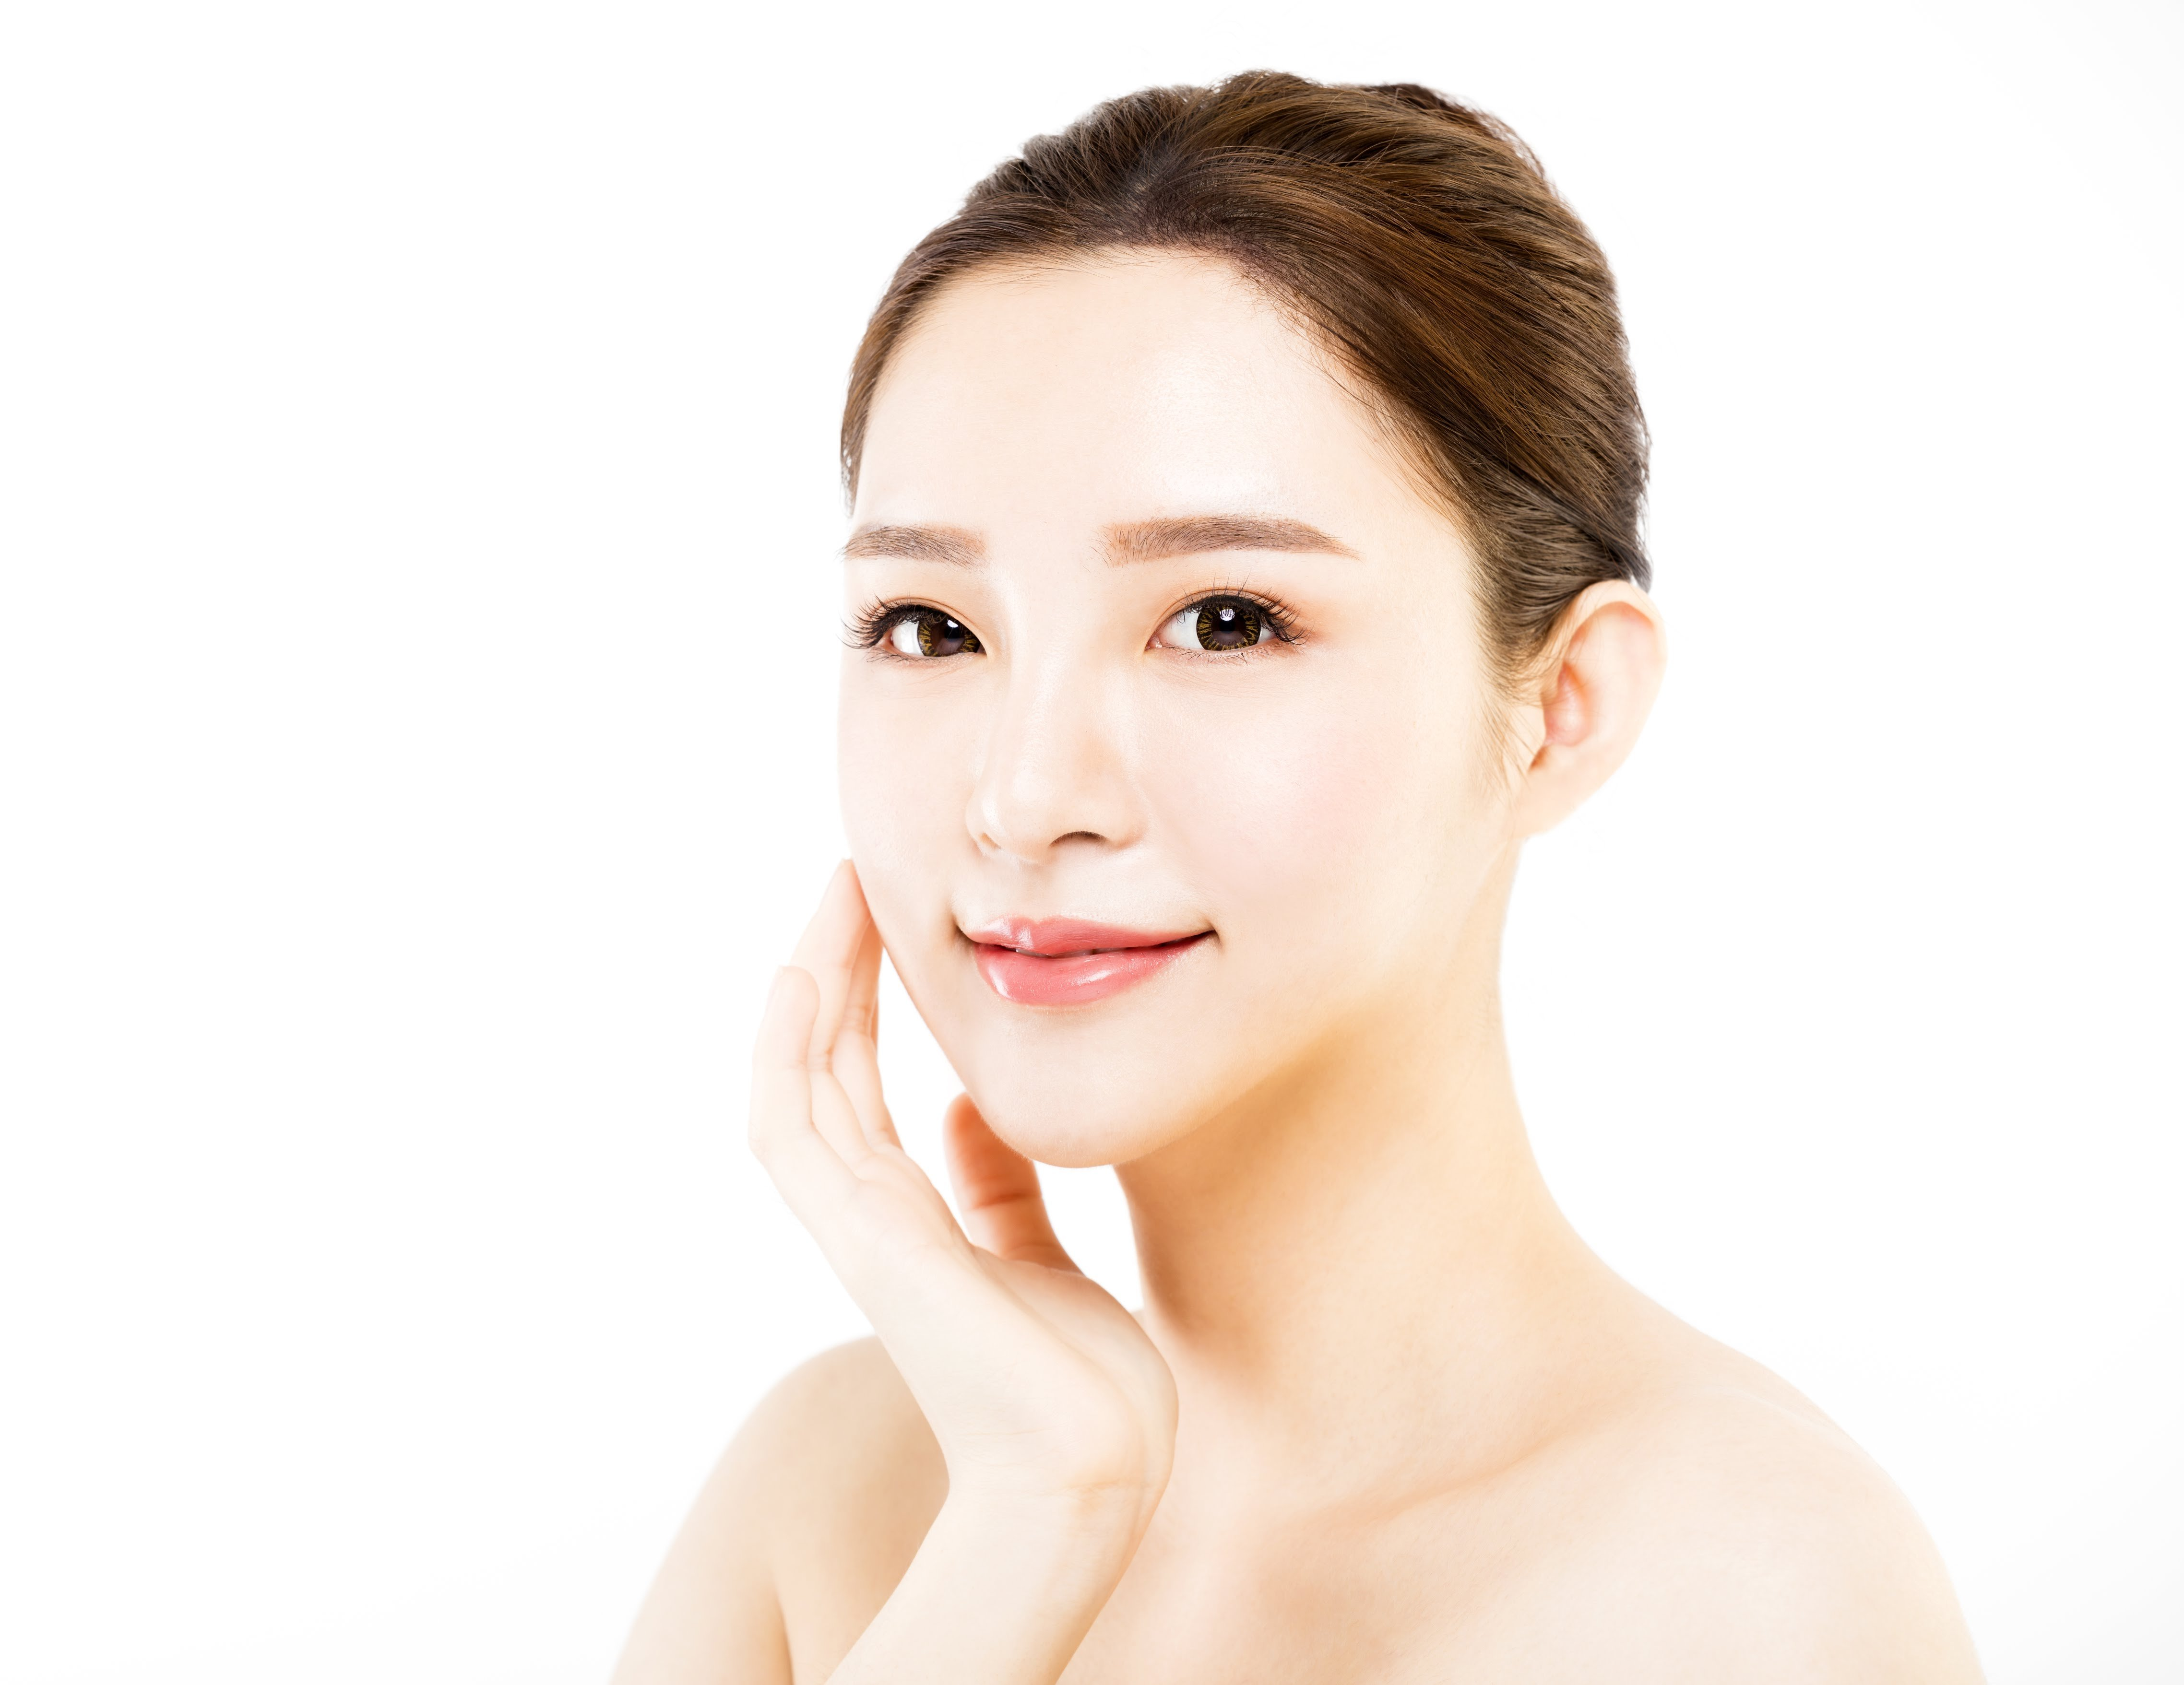 Korean Women Beauty Trends